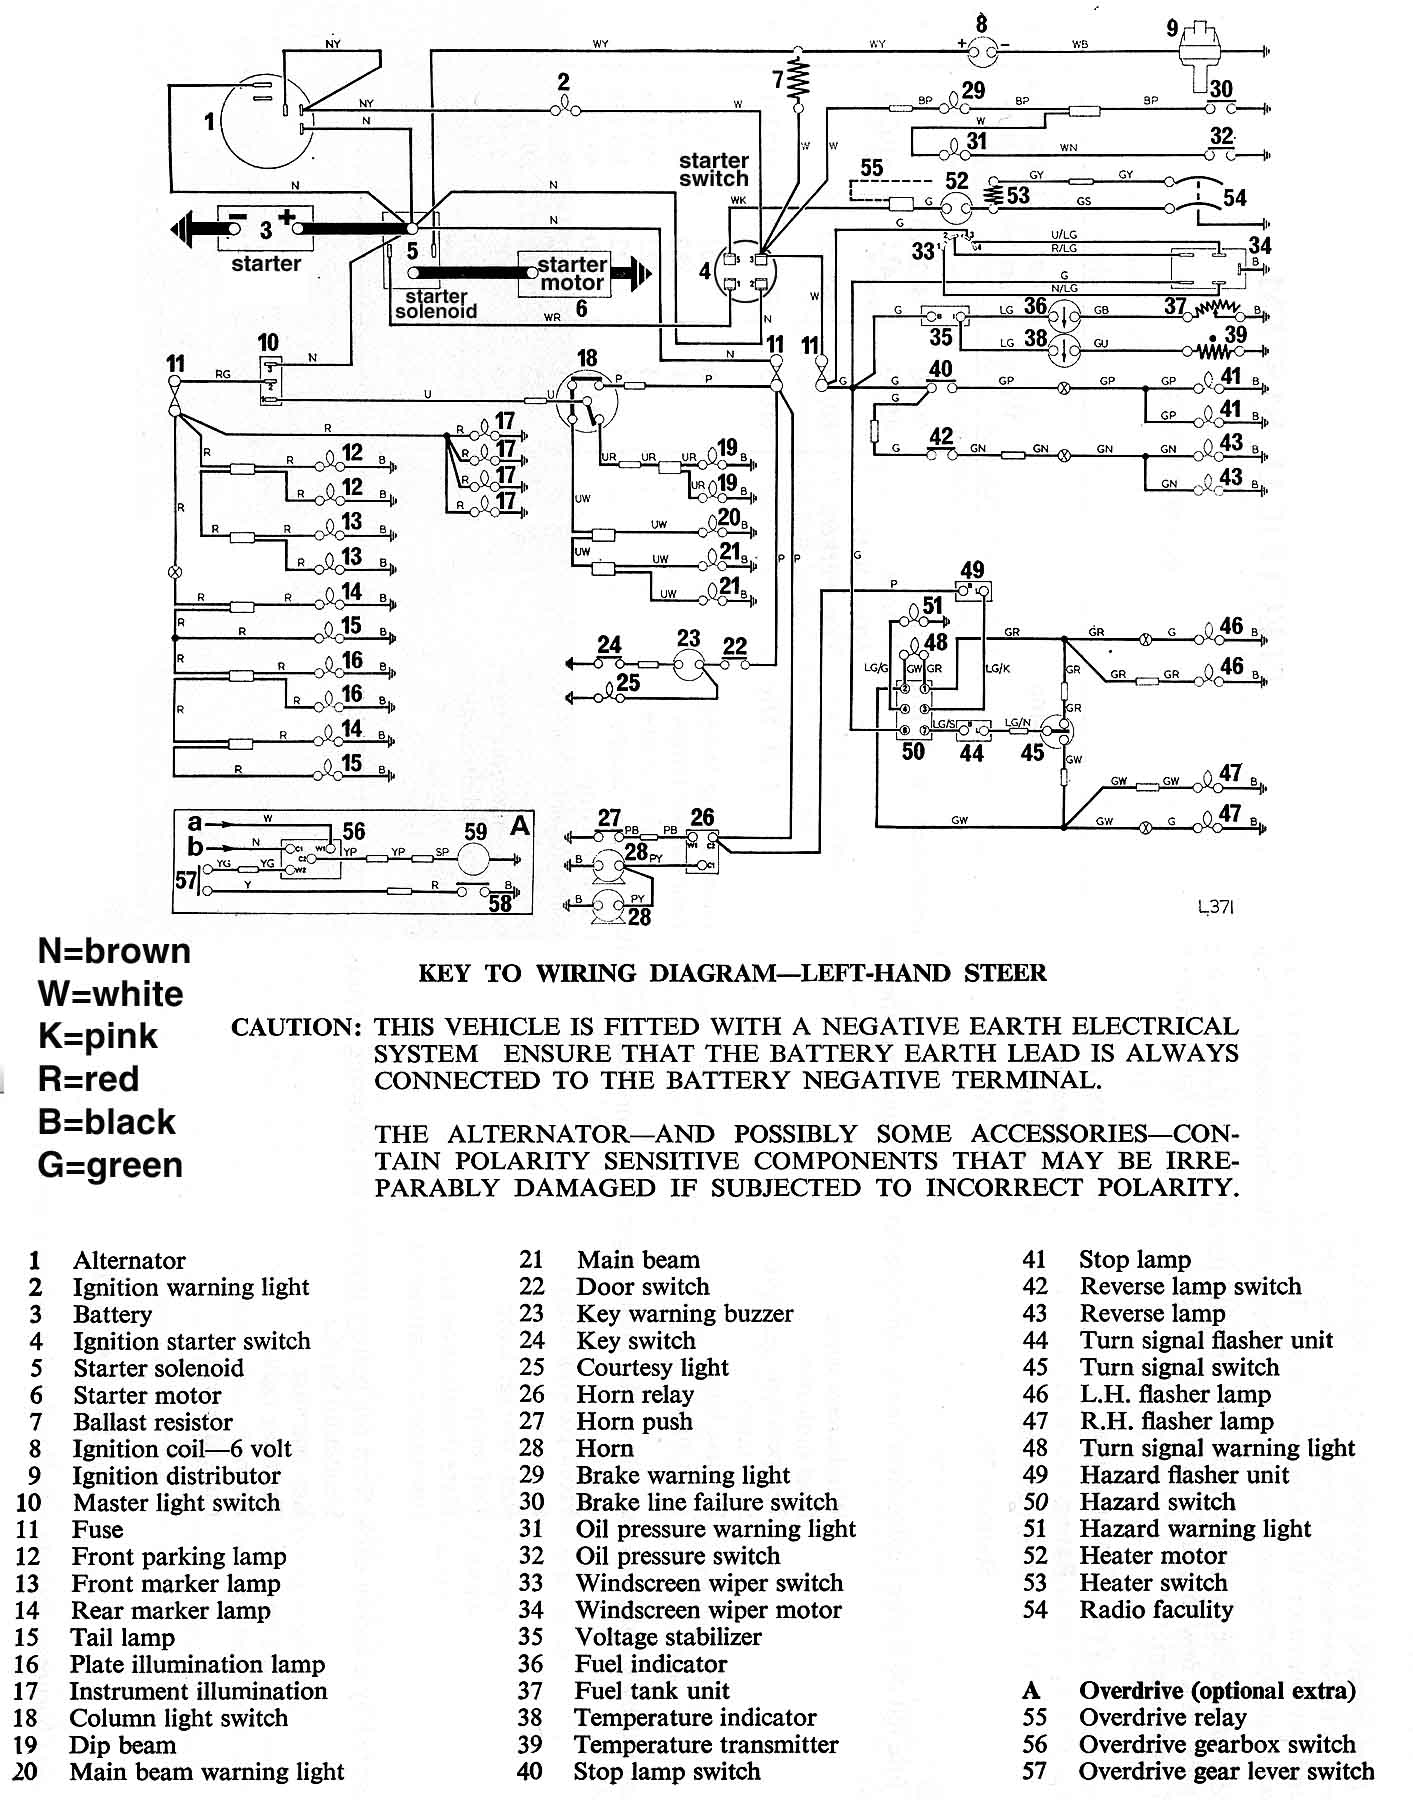 MKIVwire wiring schematics and diagrams triumph spitfire, gt6, herald 73 triumph spitfire 1500 wiring harness at aneh.co